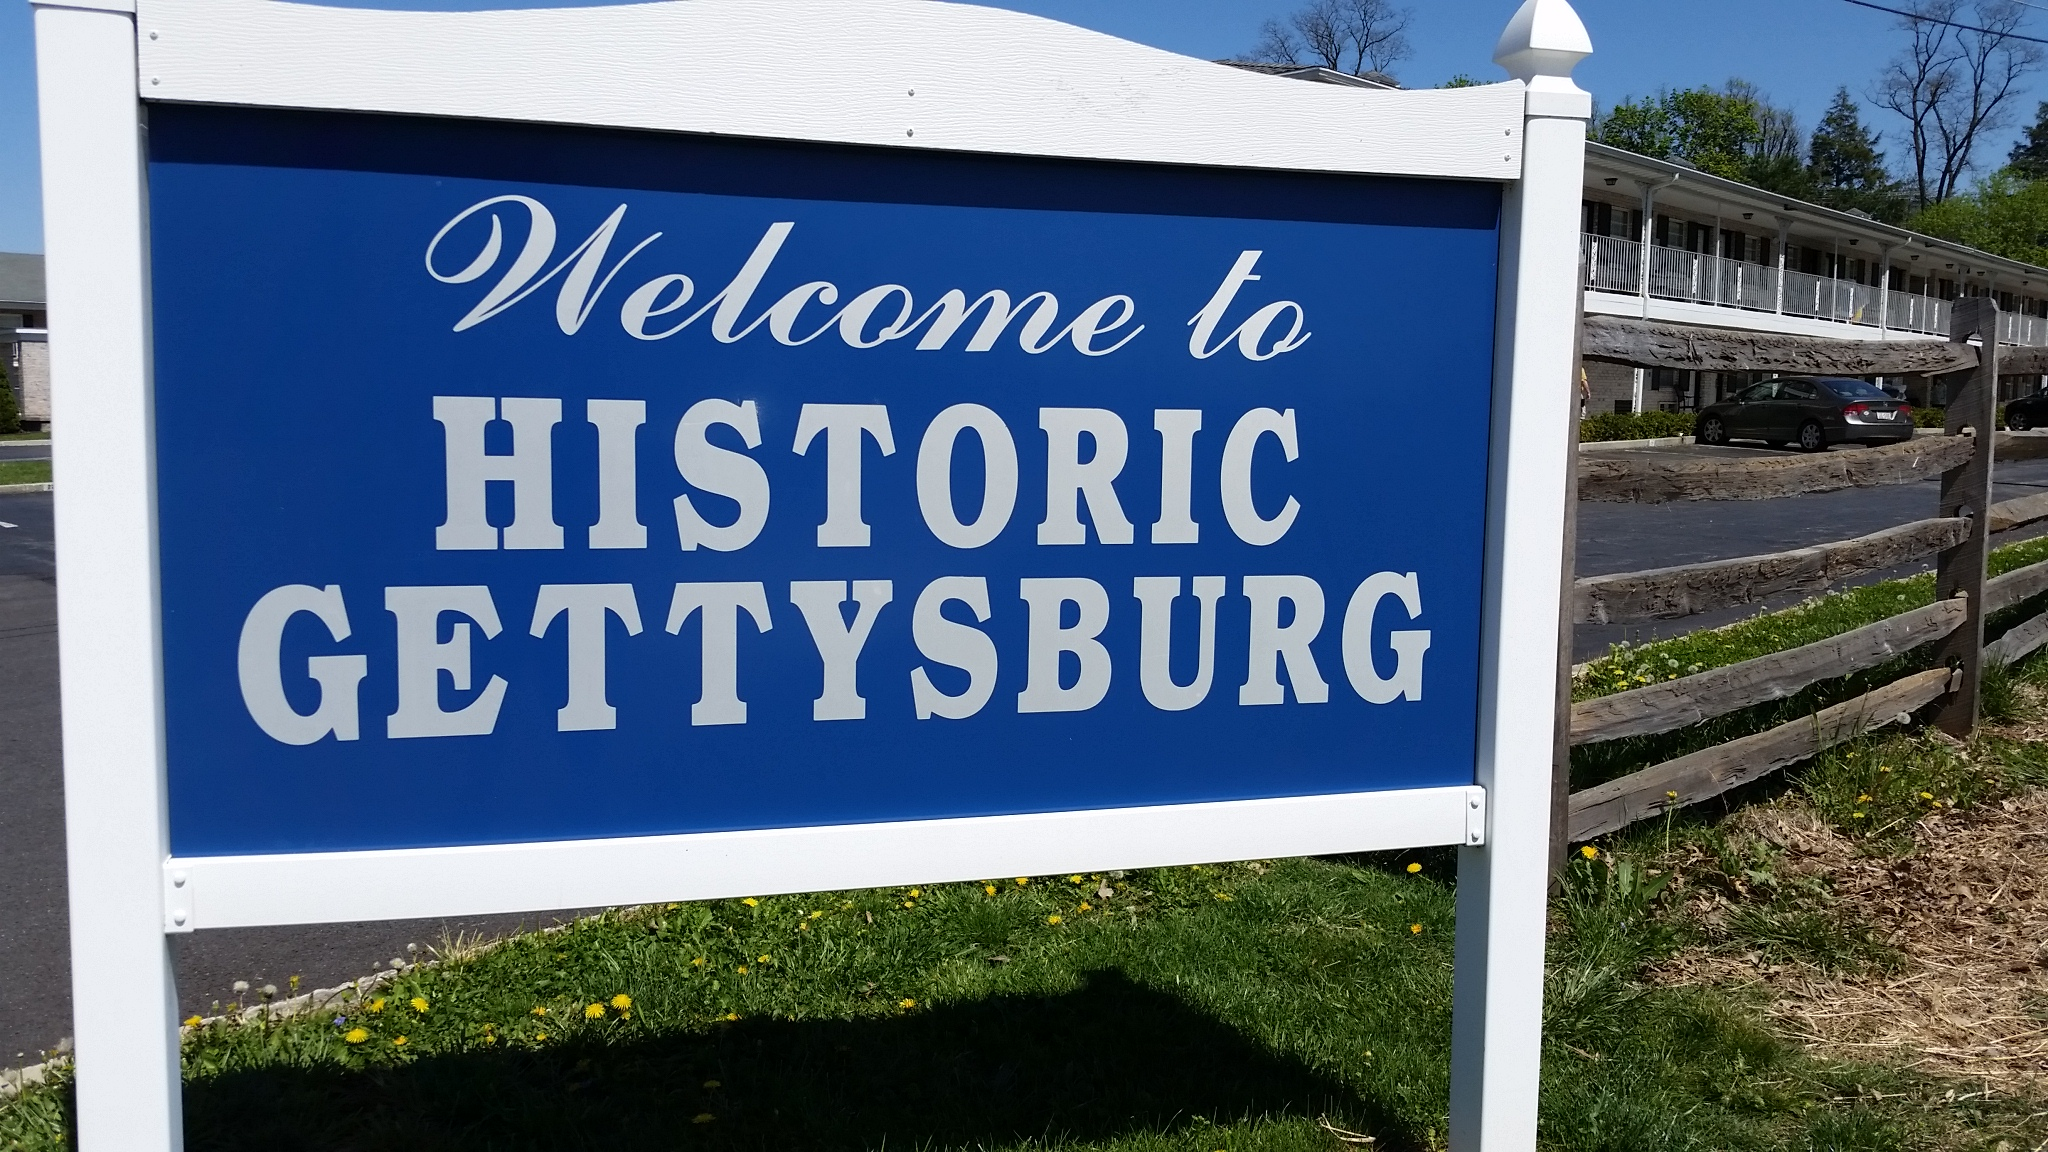 Sign that says Welcome to Historic Gettysburg